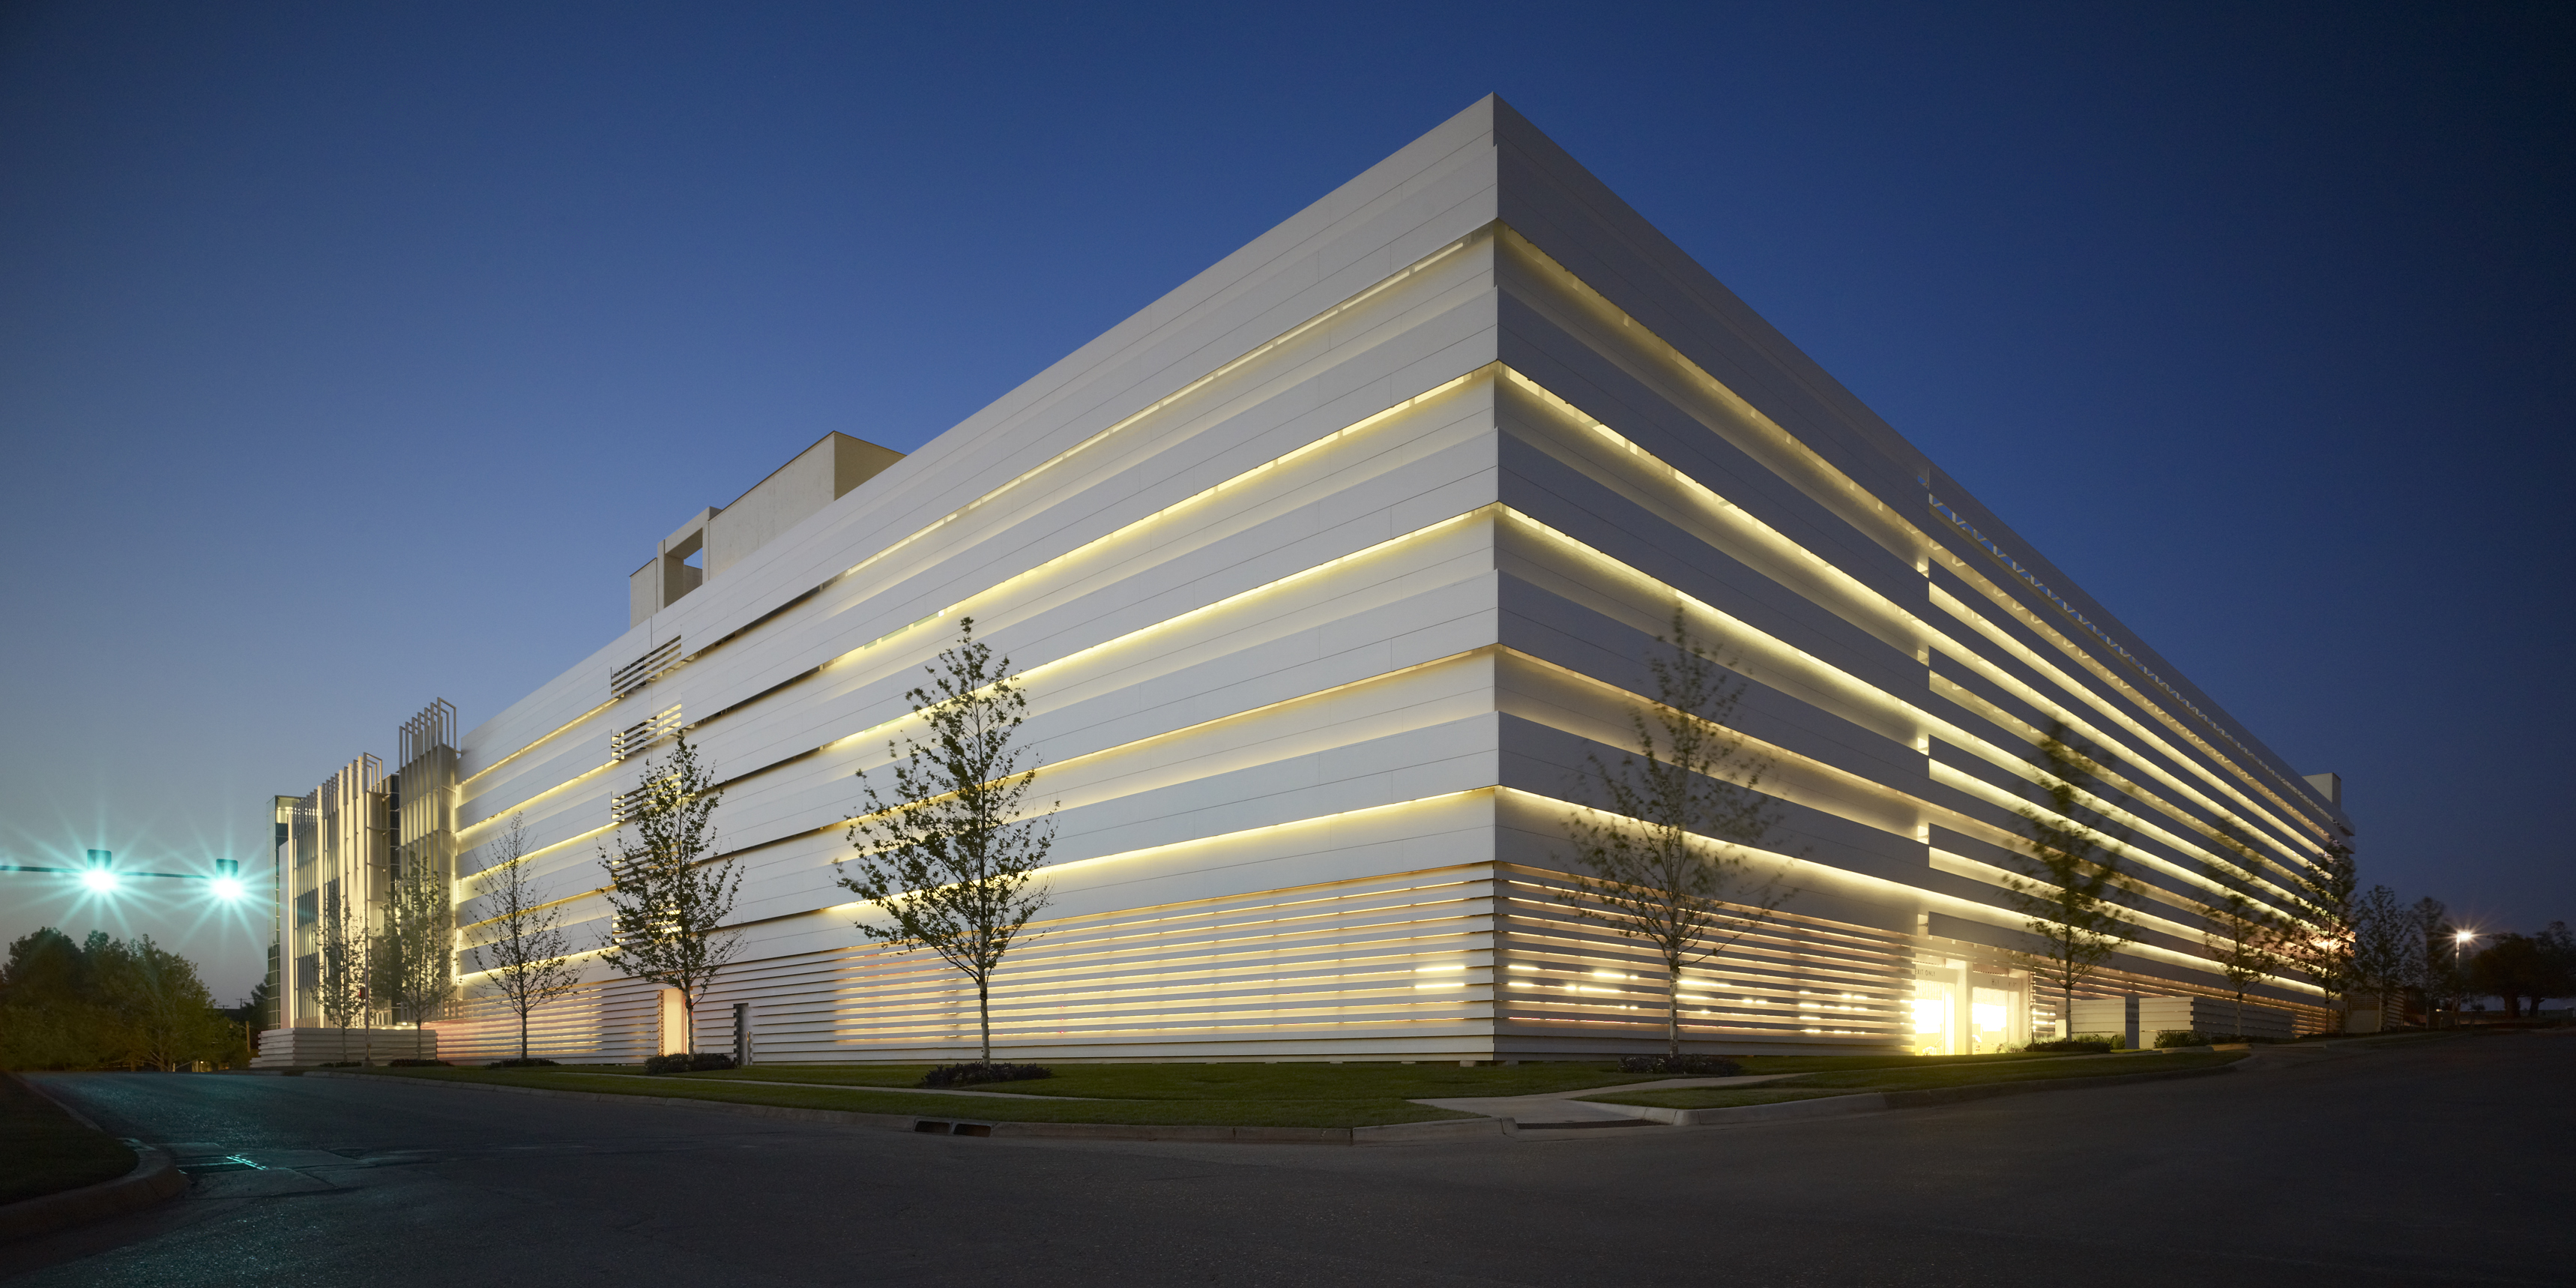 Garage Design Okc: Chesapeake Car Park One